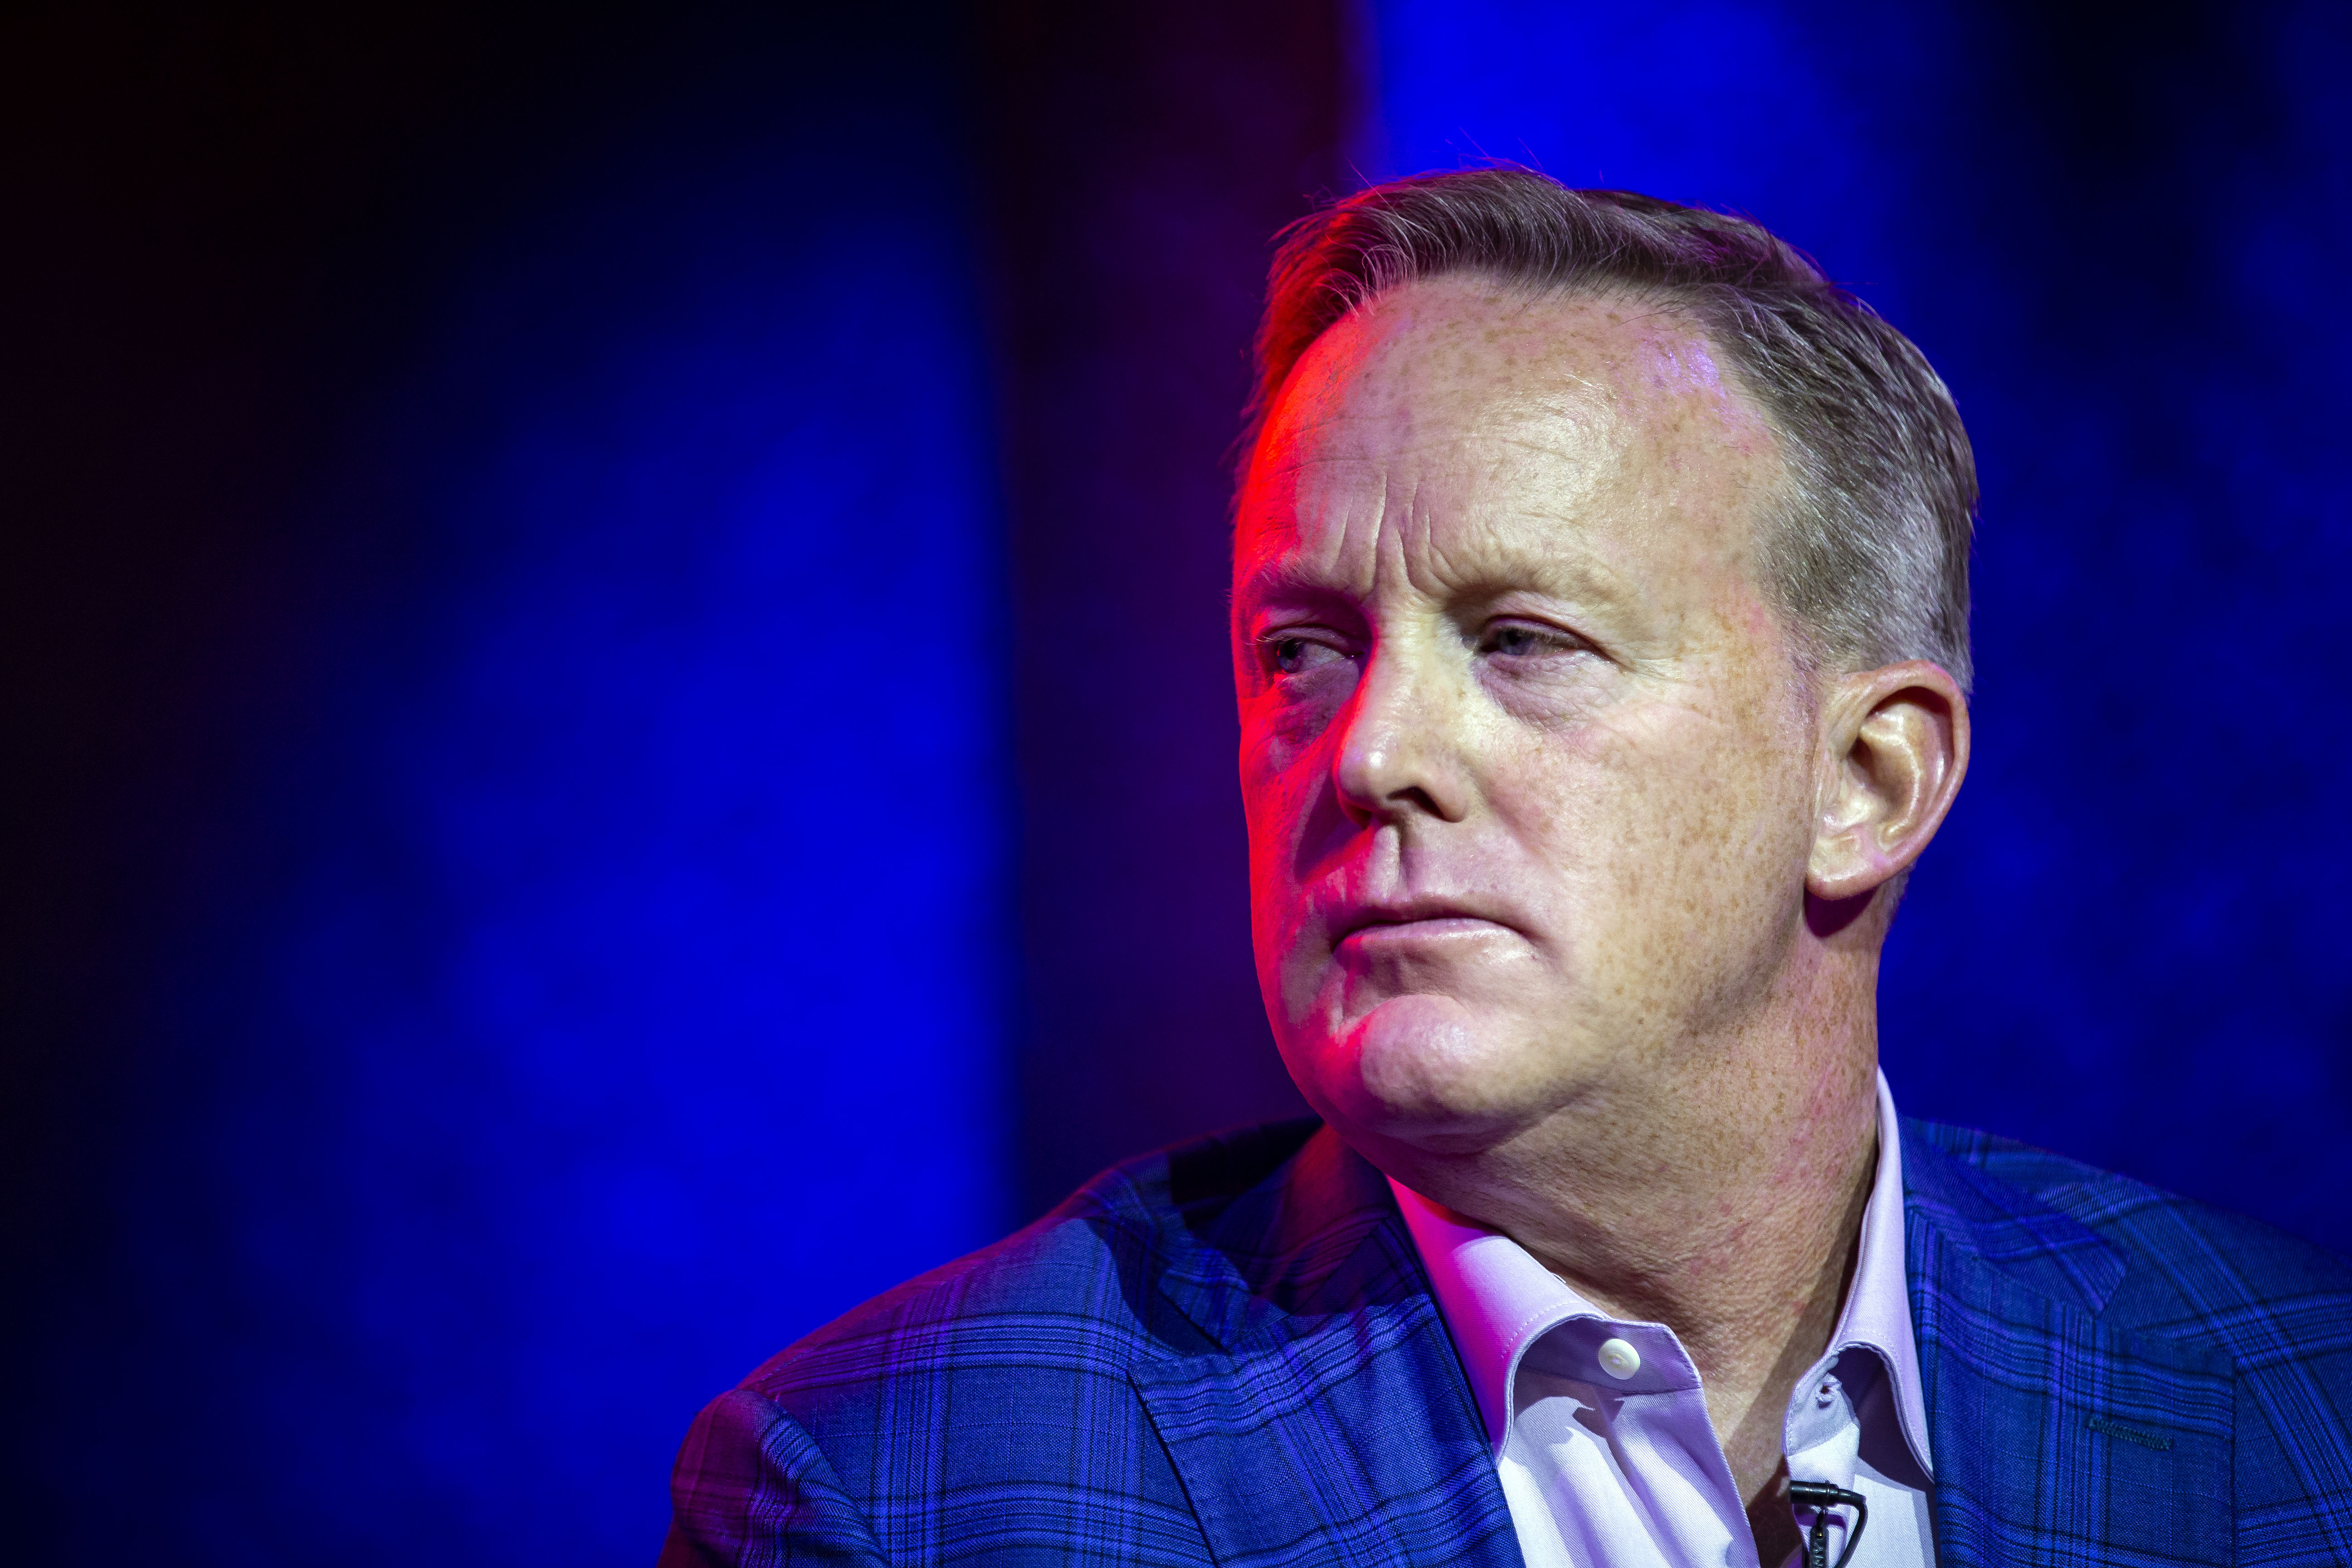 Former White House Press Secretary Sean Spicer speaks about his new book  The Briefing: Politics, The Press, and The President,  at a book launch party, at Pearl Street Warehouse, on July 24, 2018 in Washington, DC.